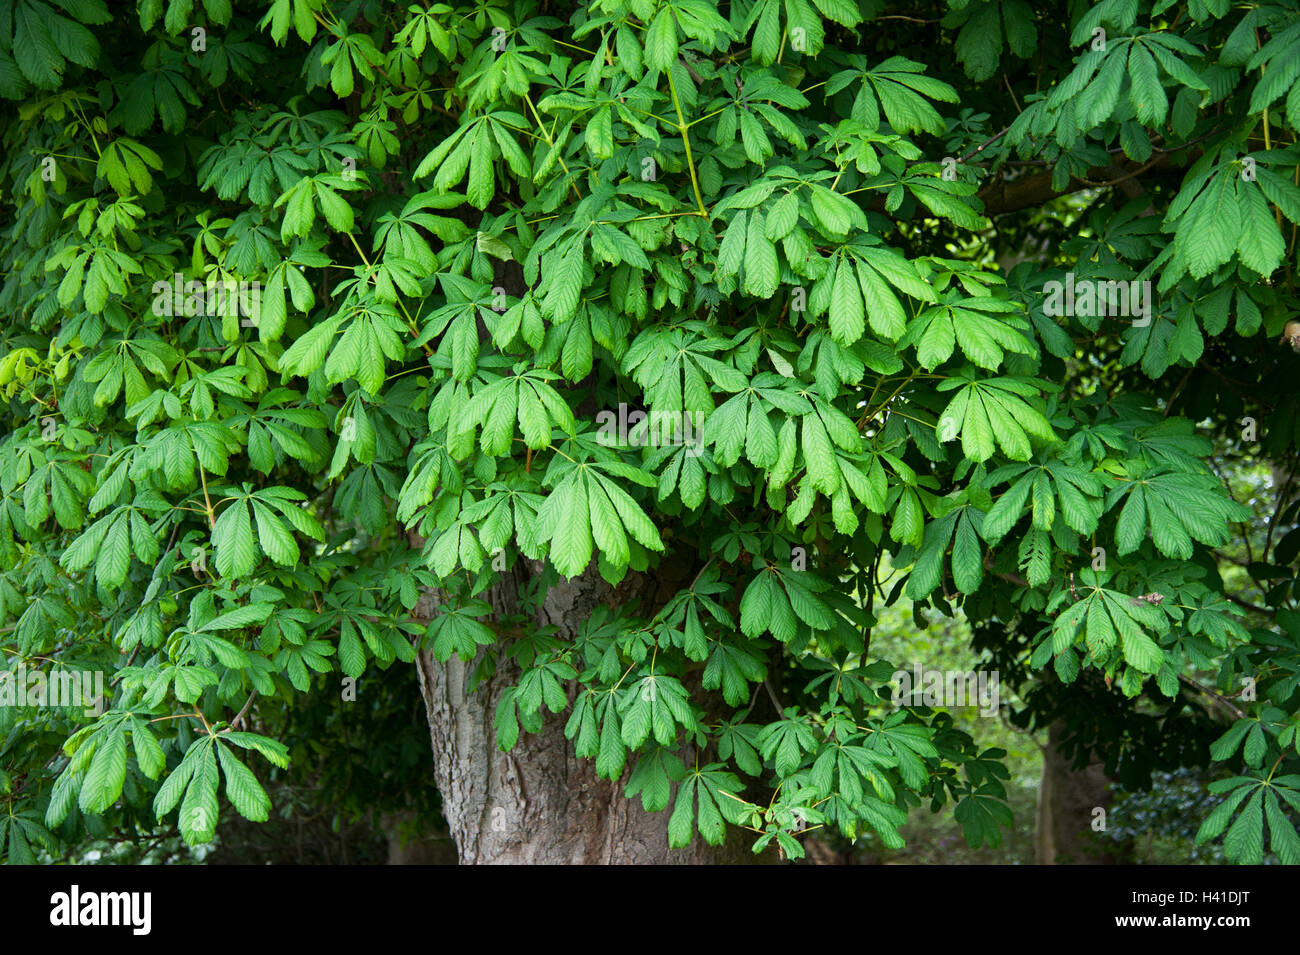 Horse chestnut tree in late spring - Stock Image